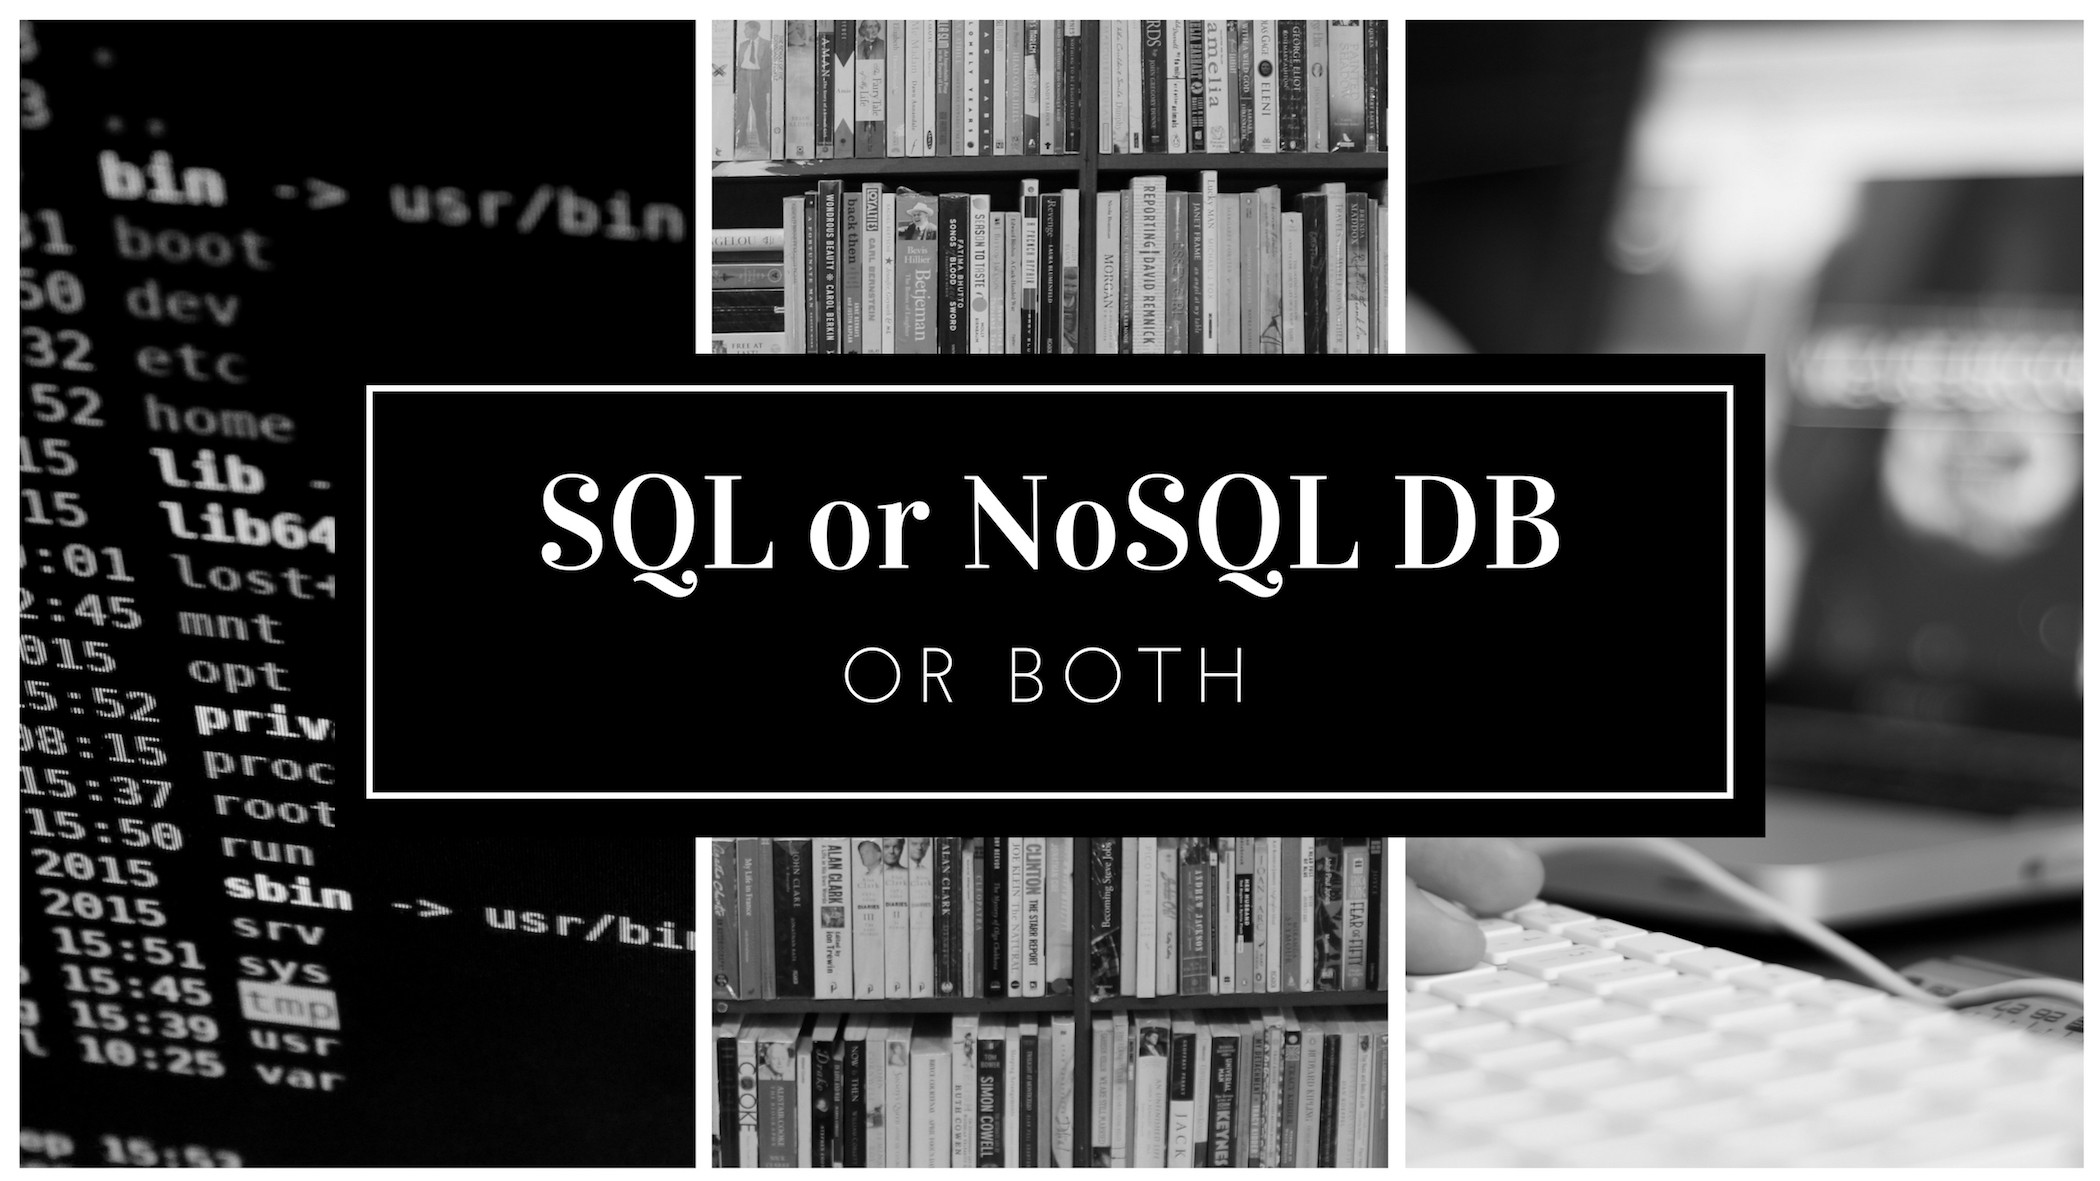 Should You Use NoSQL Or SQL Db Or Both? - The Startup - Medium